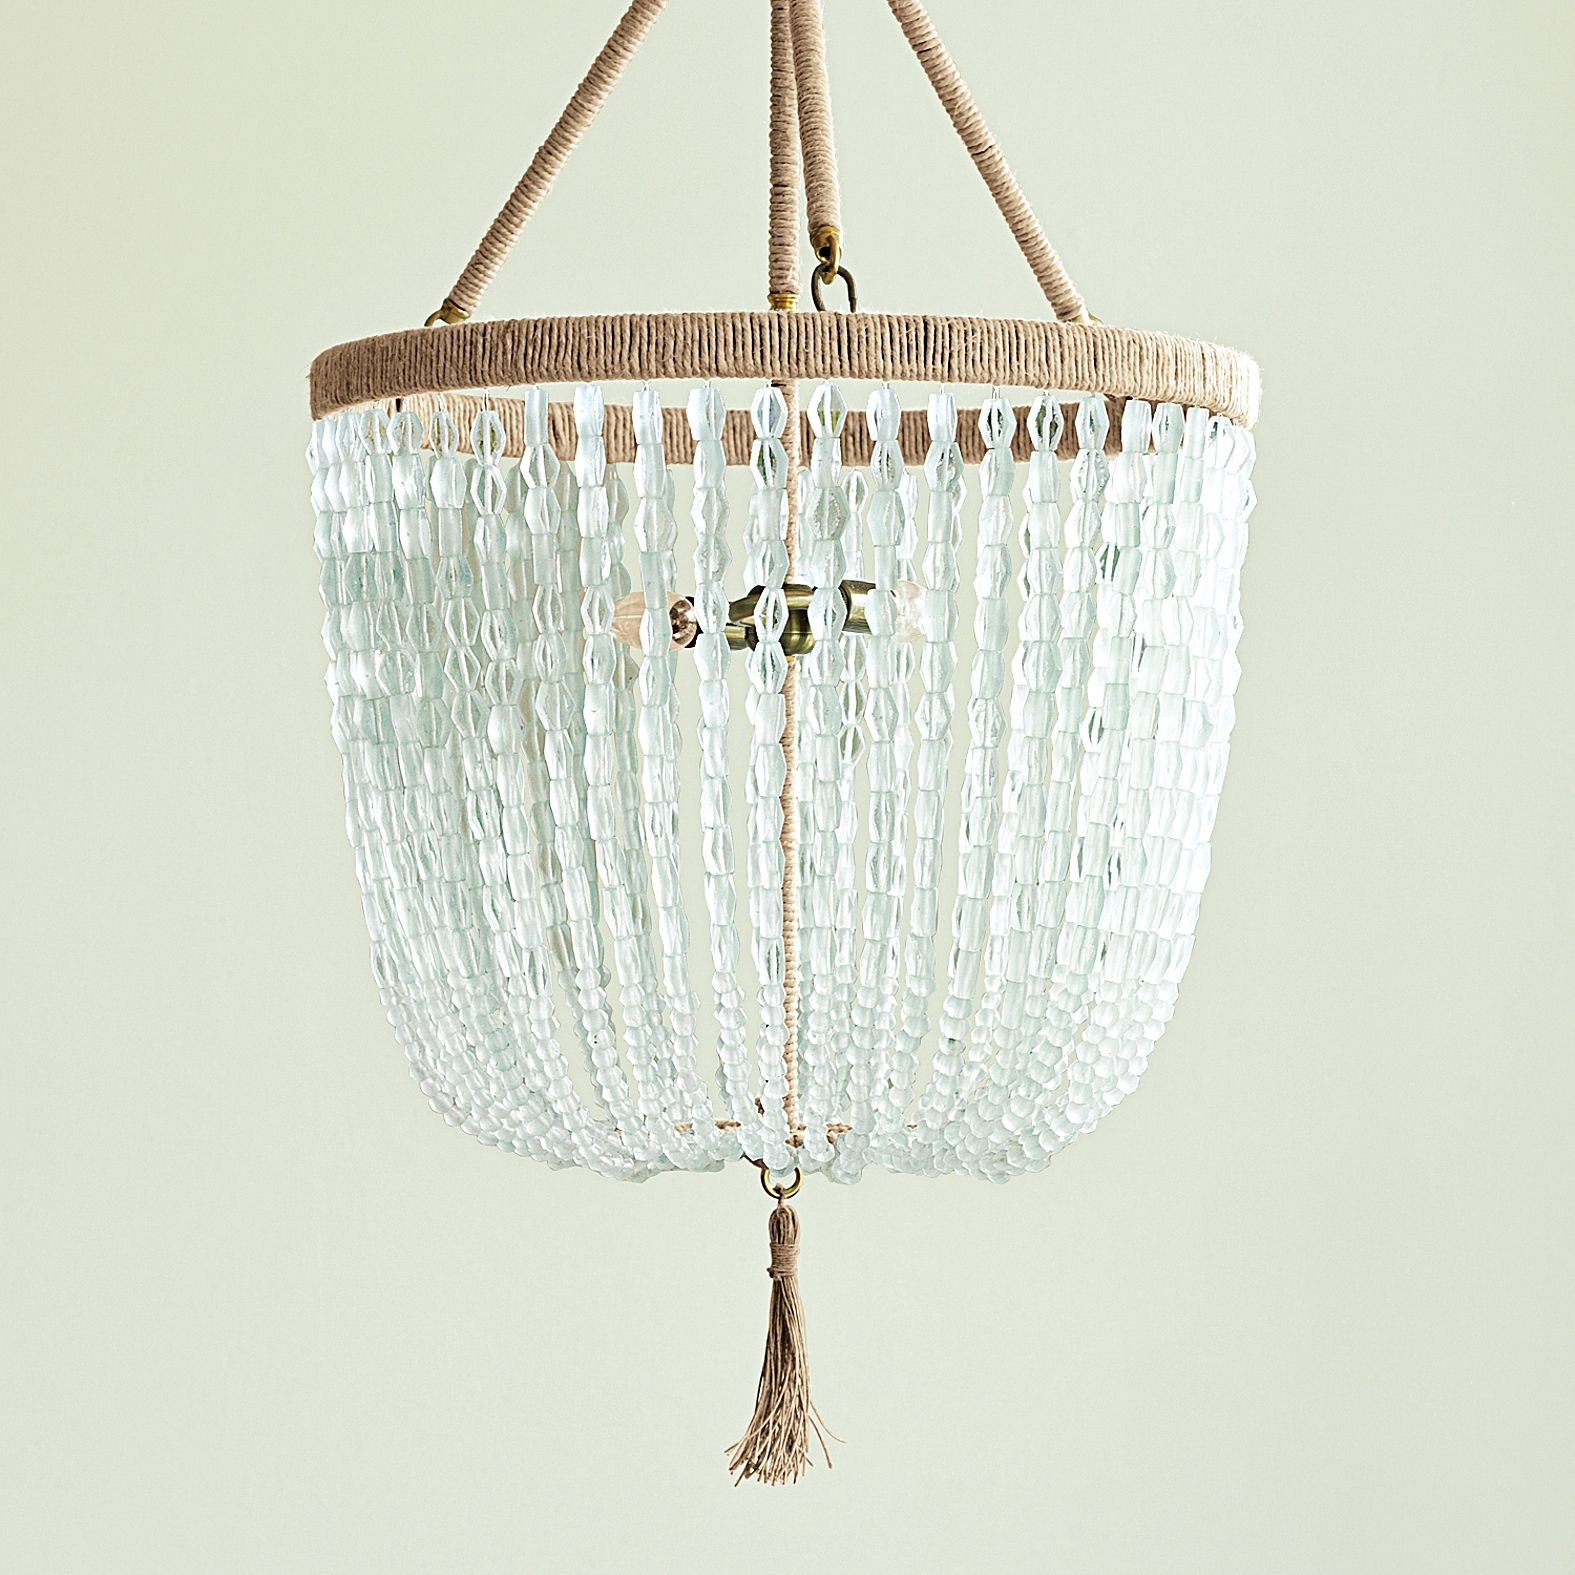 Seychelles Chandelier Serena & Lily for the home